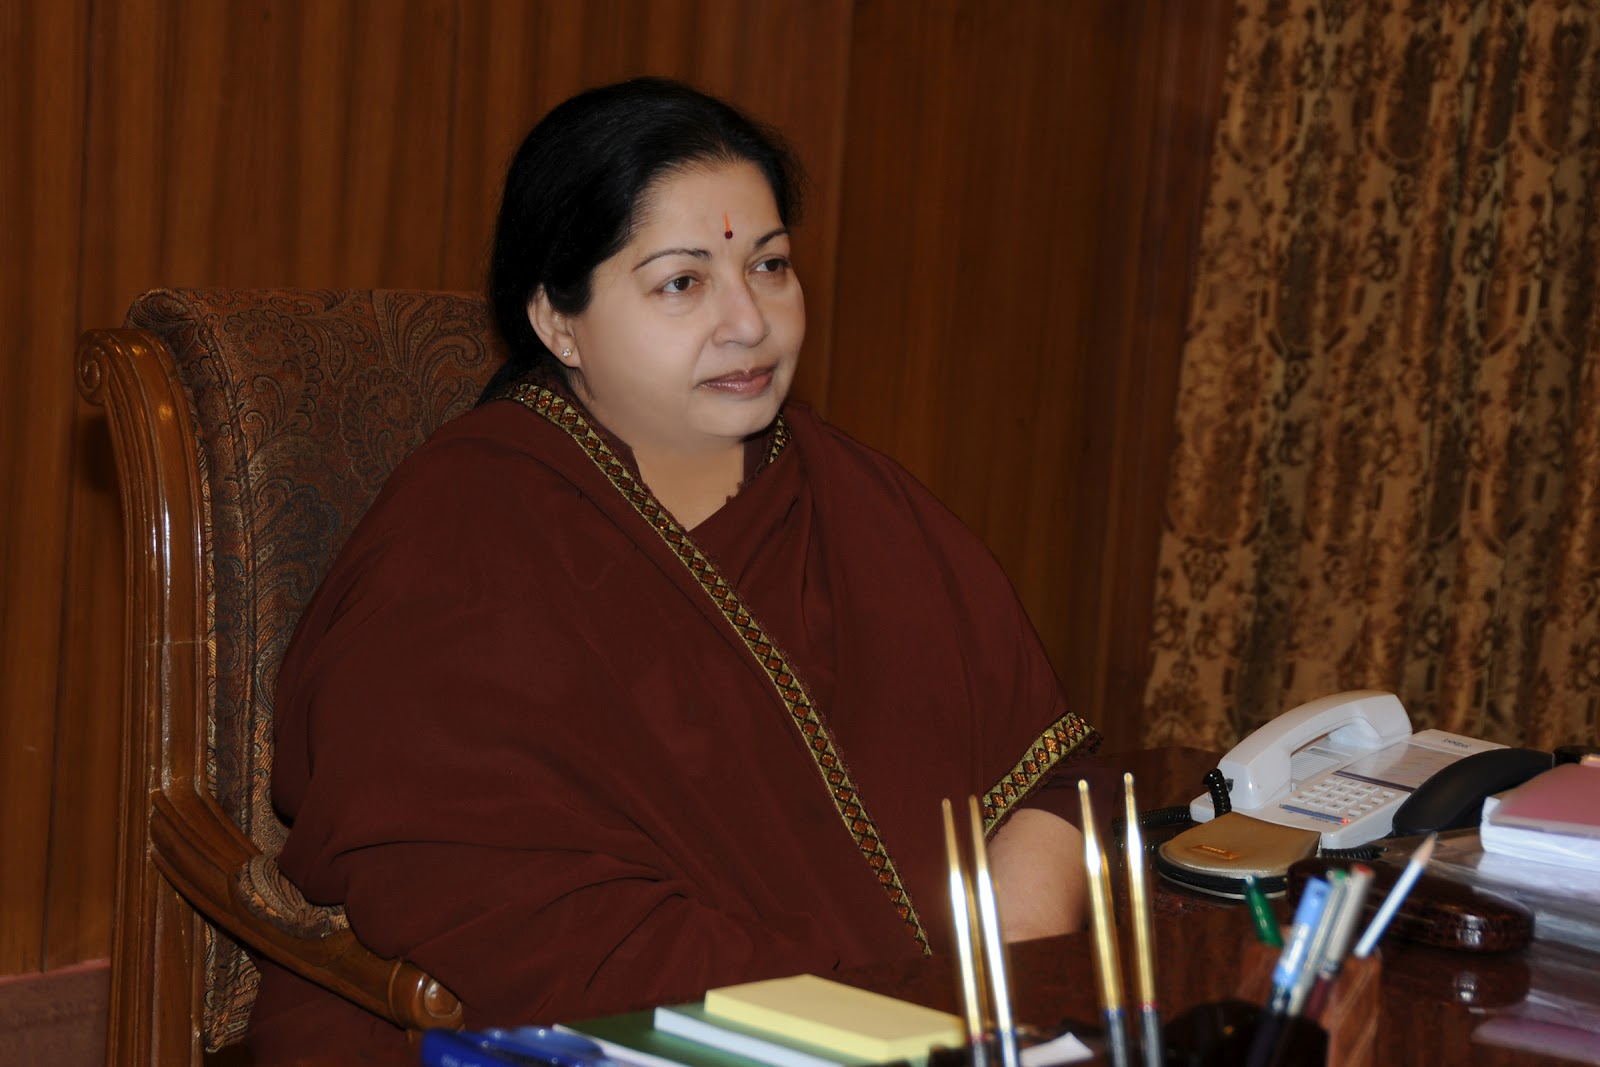 TAMILNADU CHIEF MINISTER SELVI J.JAYALALITHA HIGH QUALITY PHOTOS - Indian Actress Hot Photos and ...